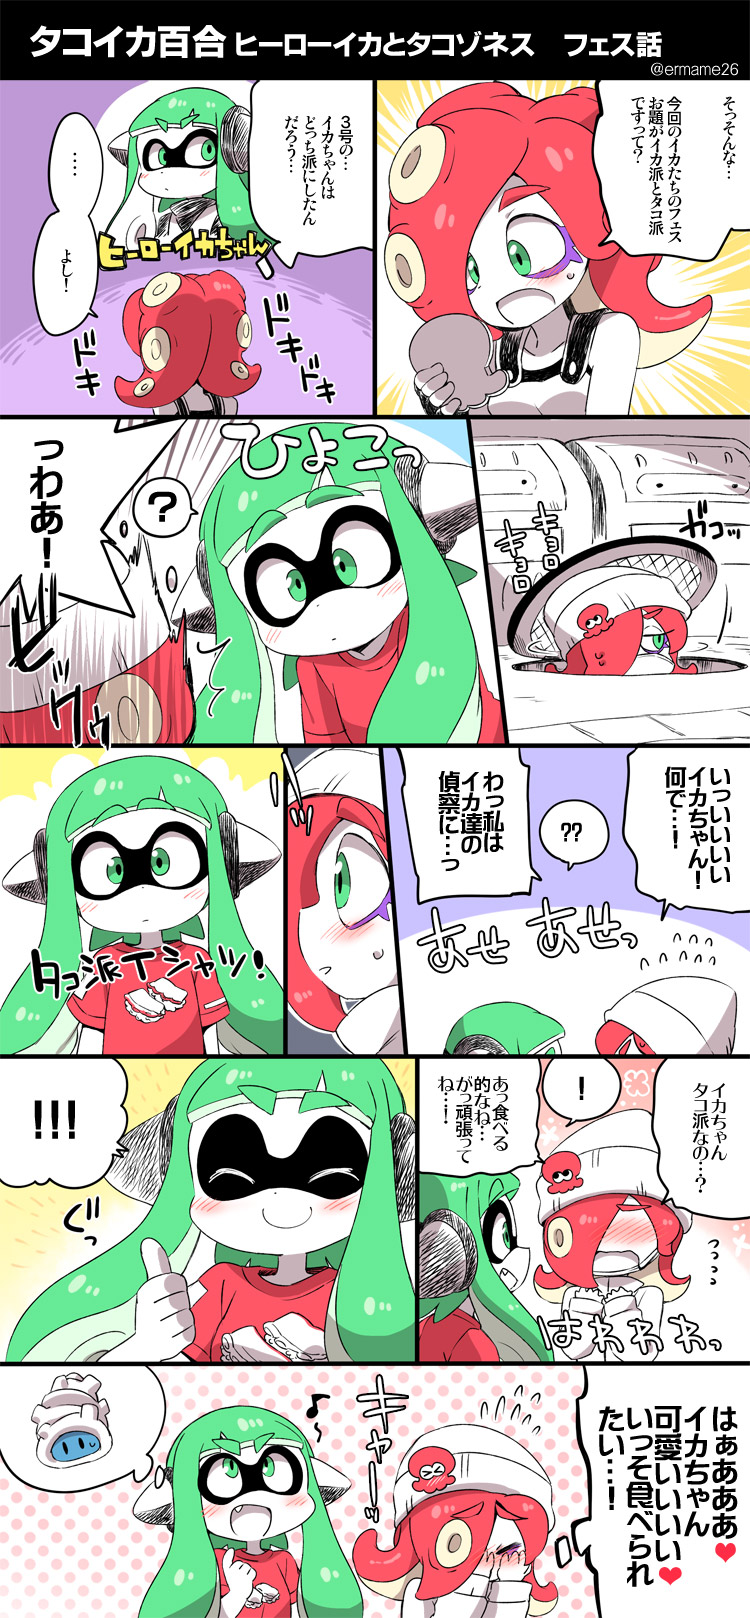 ! 2girls ? agent_3 alternate_costume artist_name beanie blush comic covering_face domino_mask eromame expressive_clothes eyebrows face_mask fang flying_sweatdrops green_eyes green_hair hat headphones heart heartbeat highres inkling long_hair manhole manhole_cover mask multiple_girls musical_note octarian redhead sewer short_hair silent_protagonist splatoon spoken_exclamation_mark spoken_musical_note spoken_question_mark takozonesu tentacle_hair thick_eyebrows thumbs_up translated twitter_username